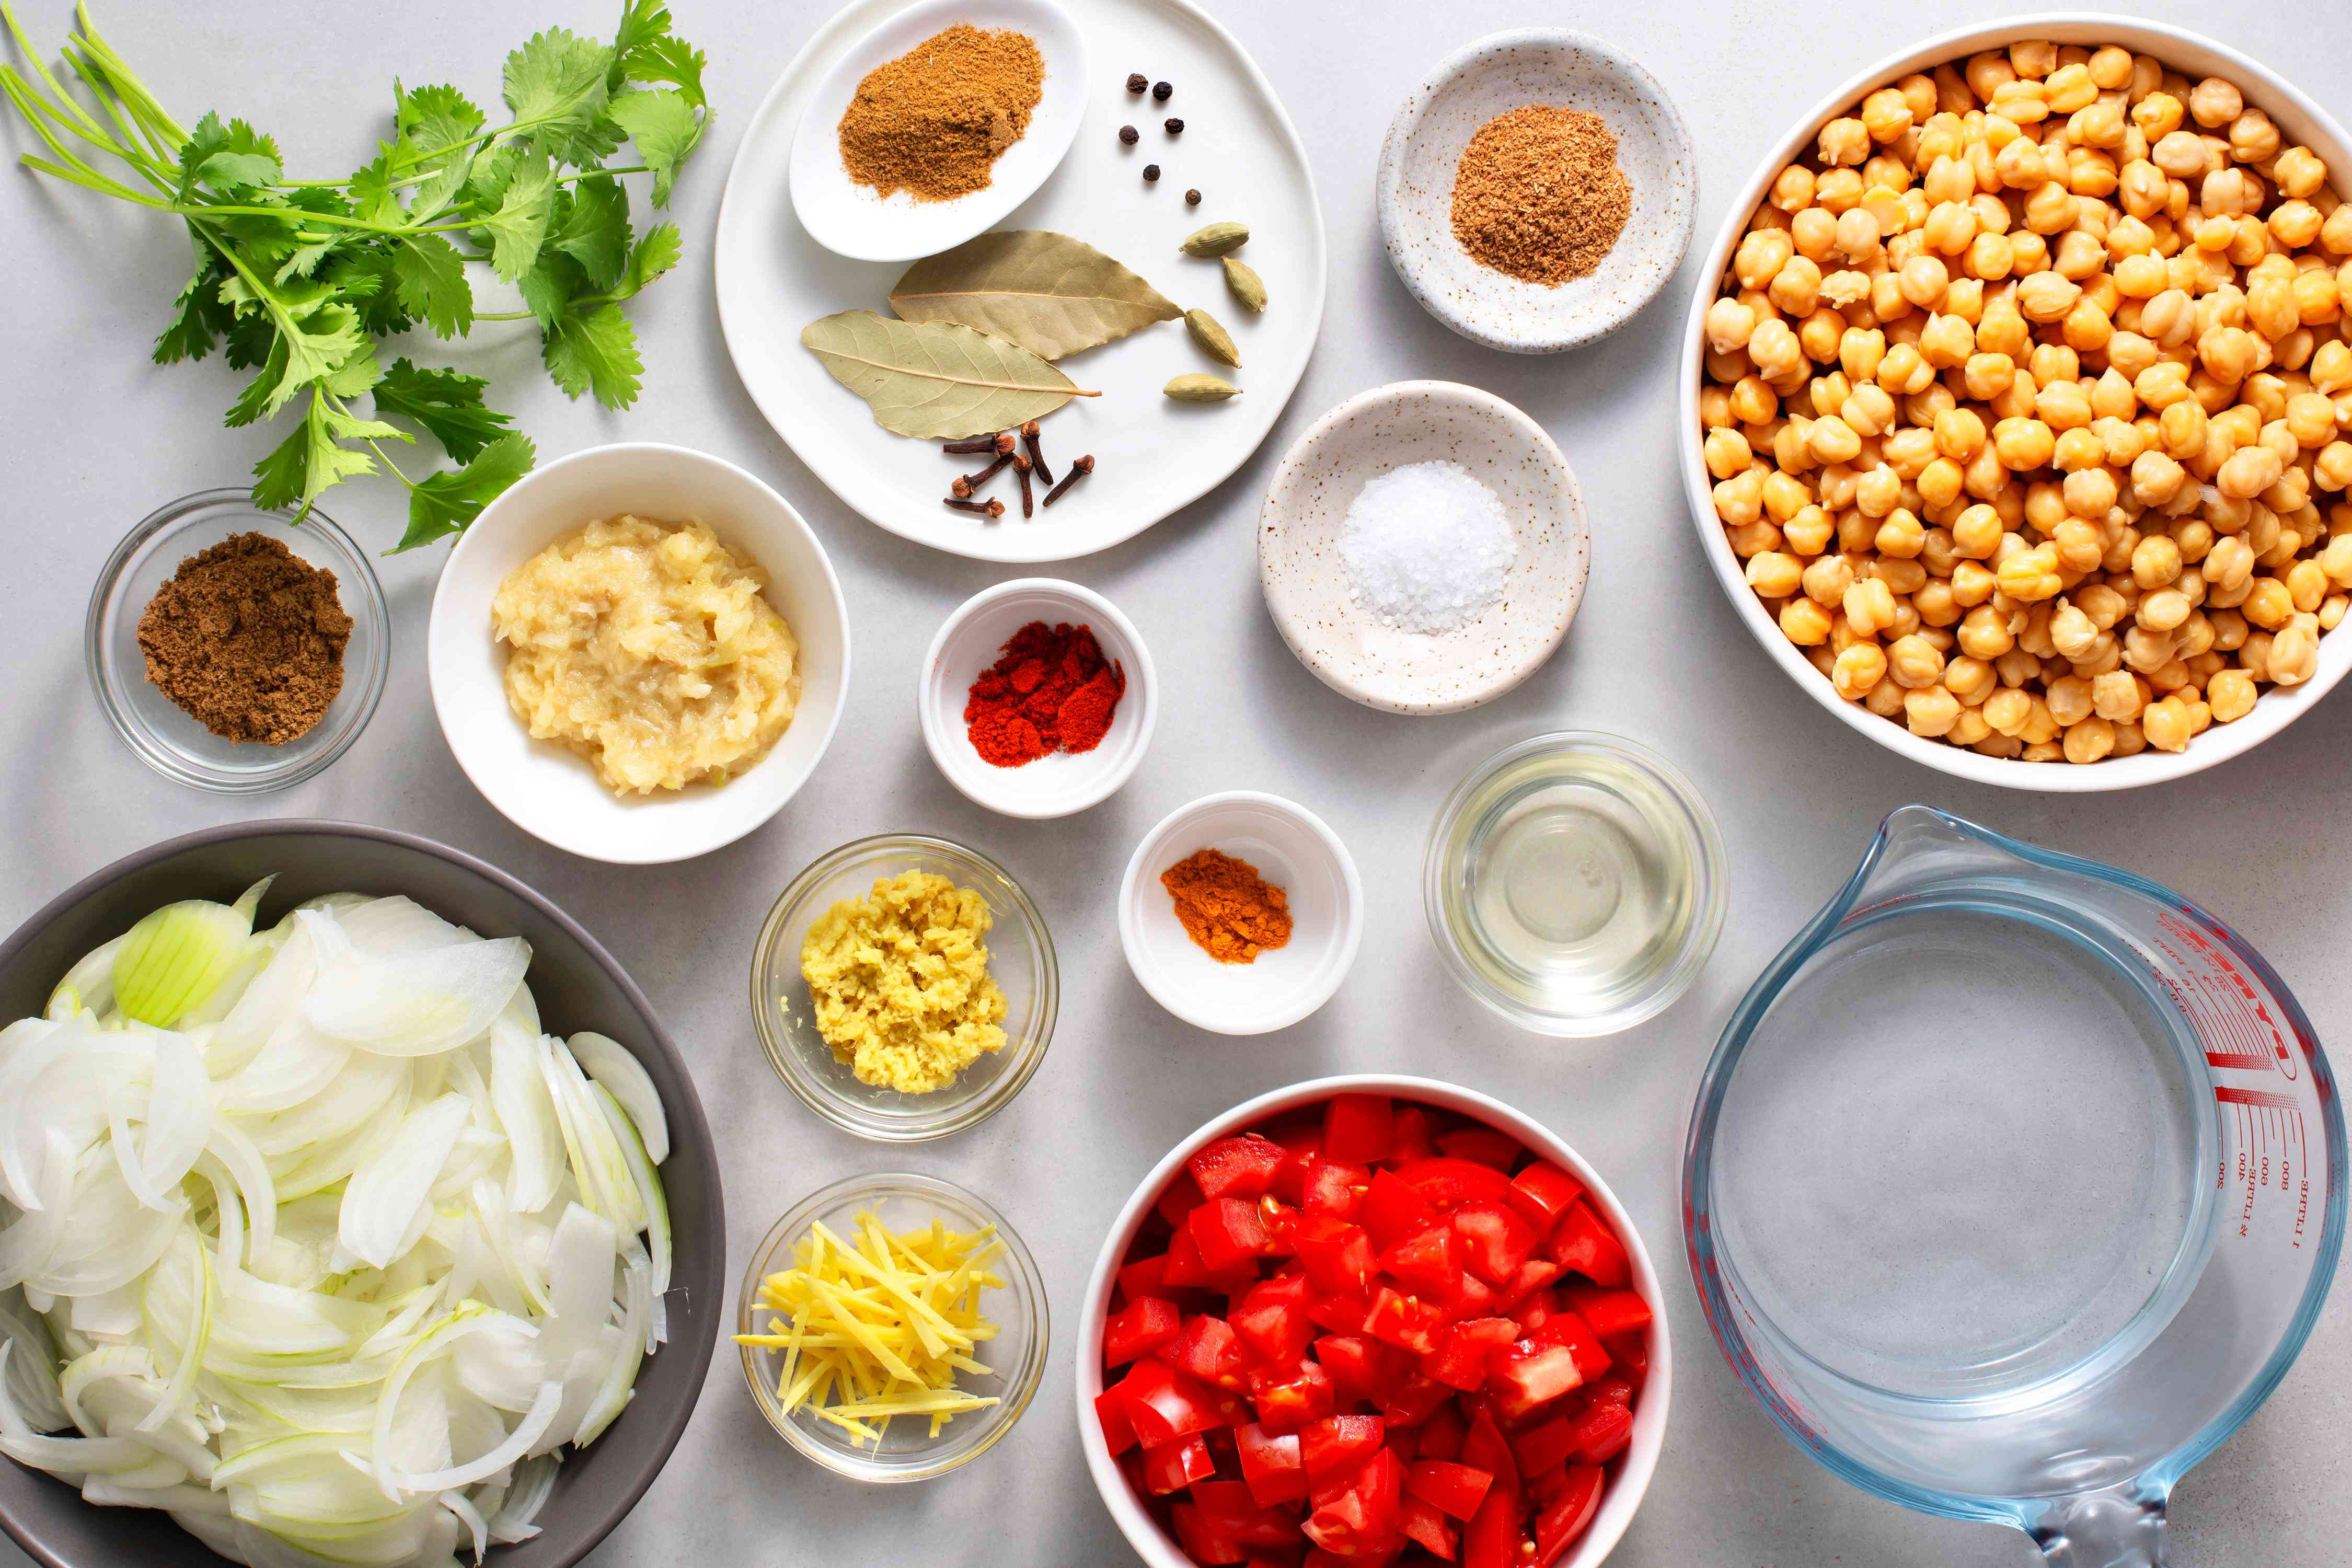 Chole chickpea curry recipe ingredients